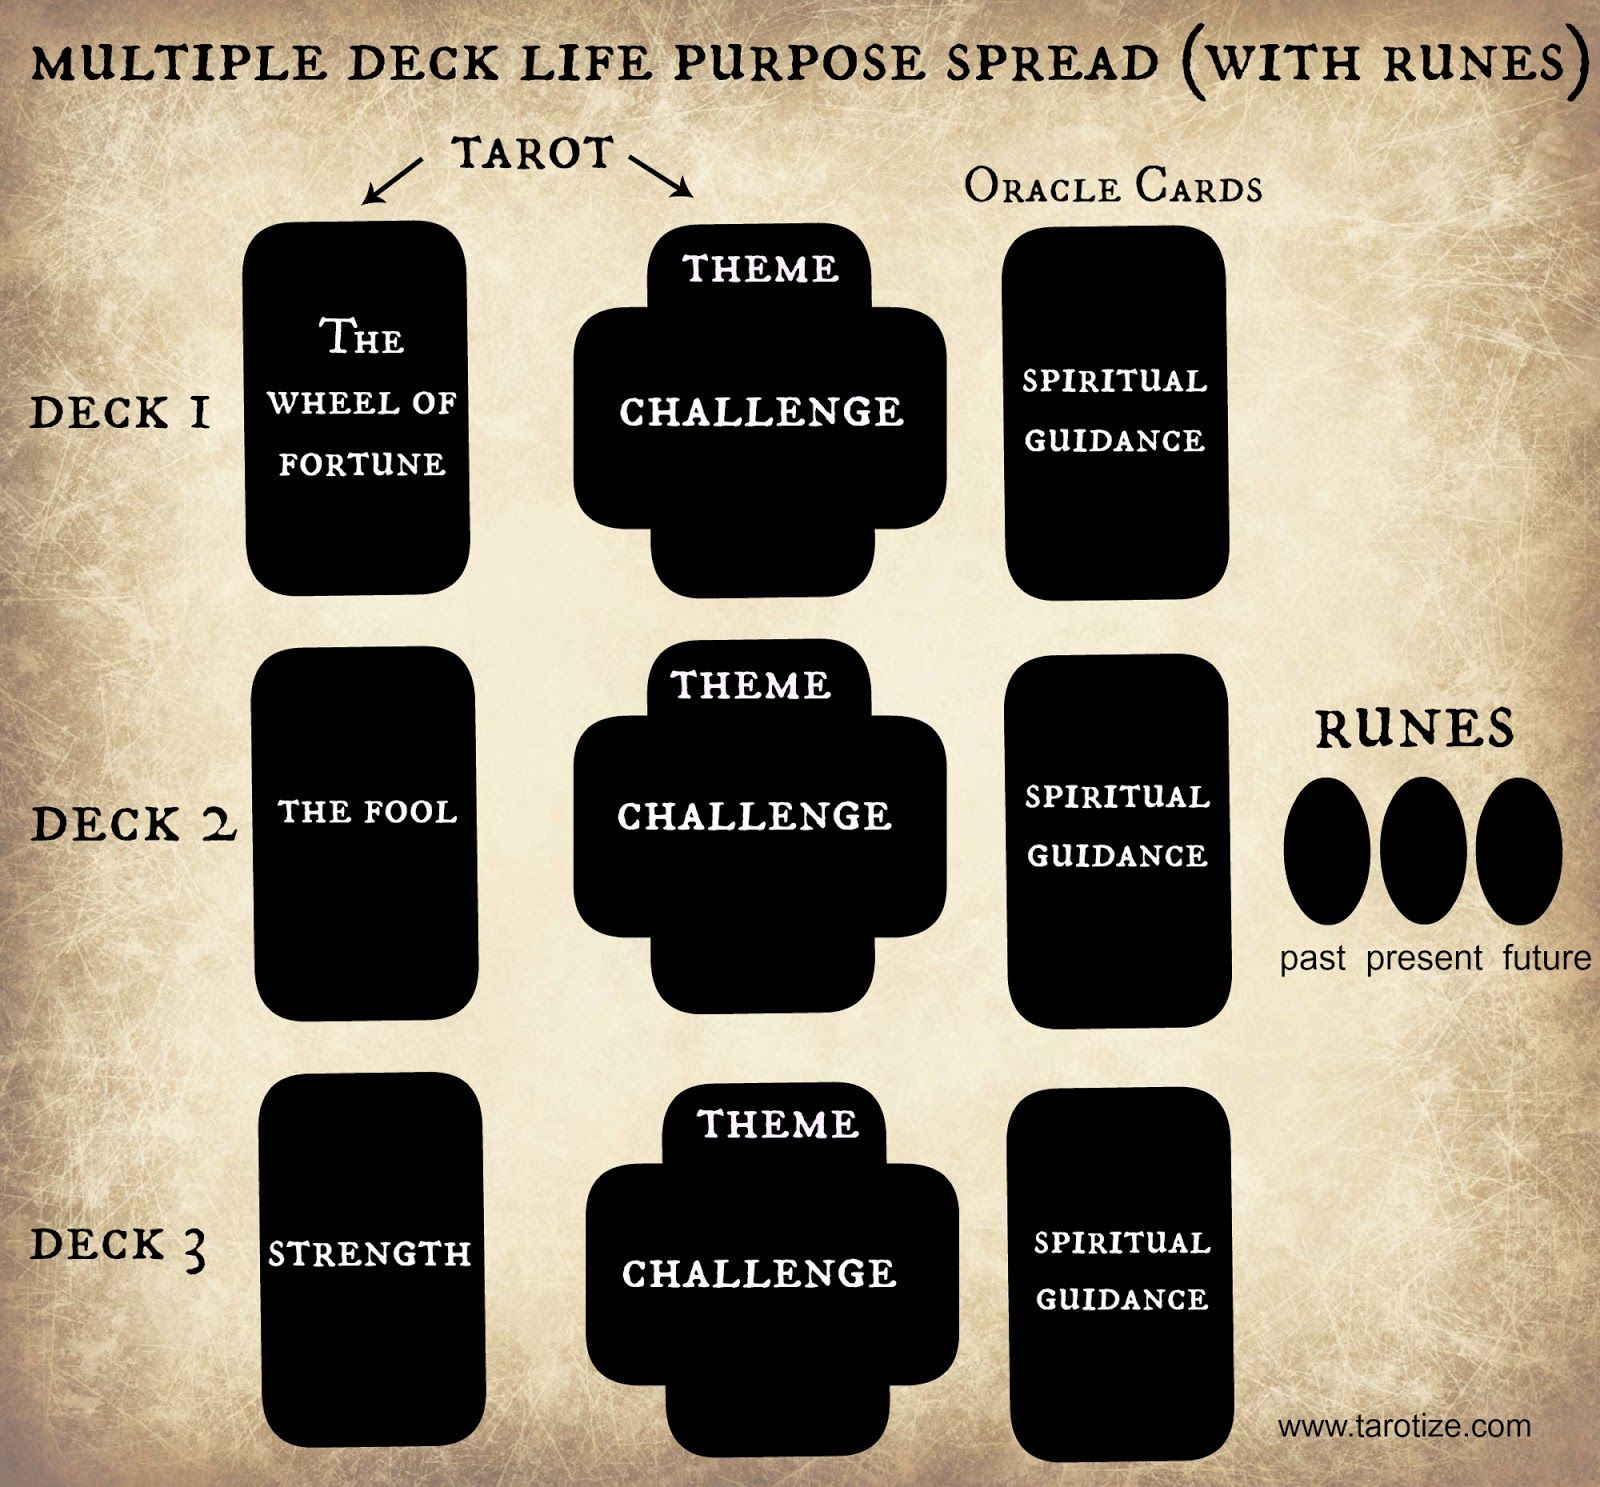 Tarotize: Get Back On Track With The Life Purpose Tarot Spread